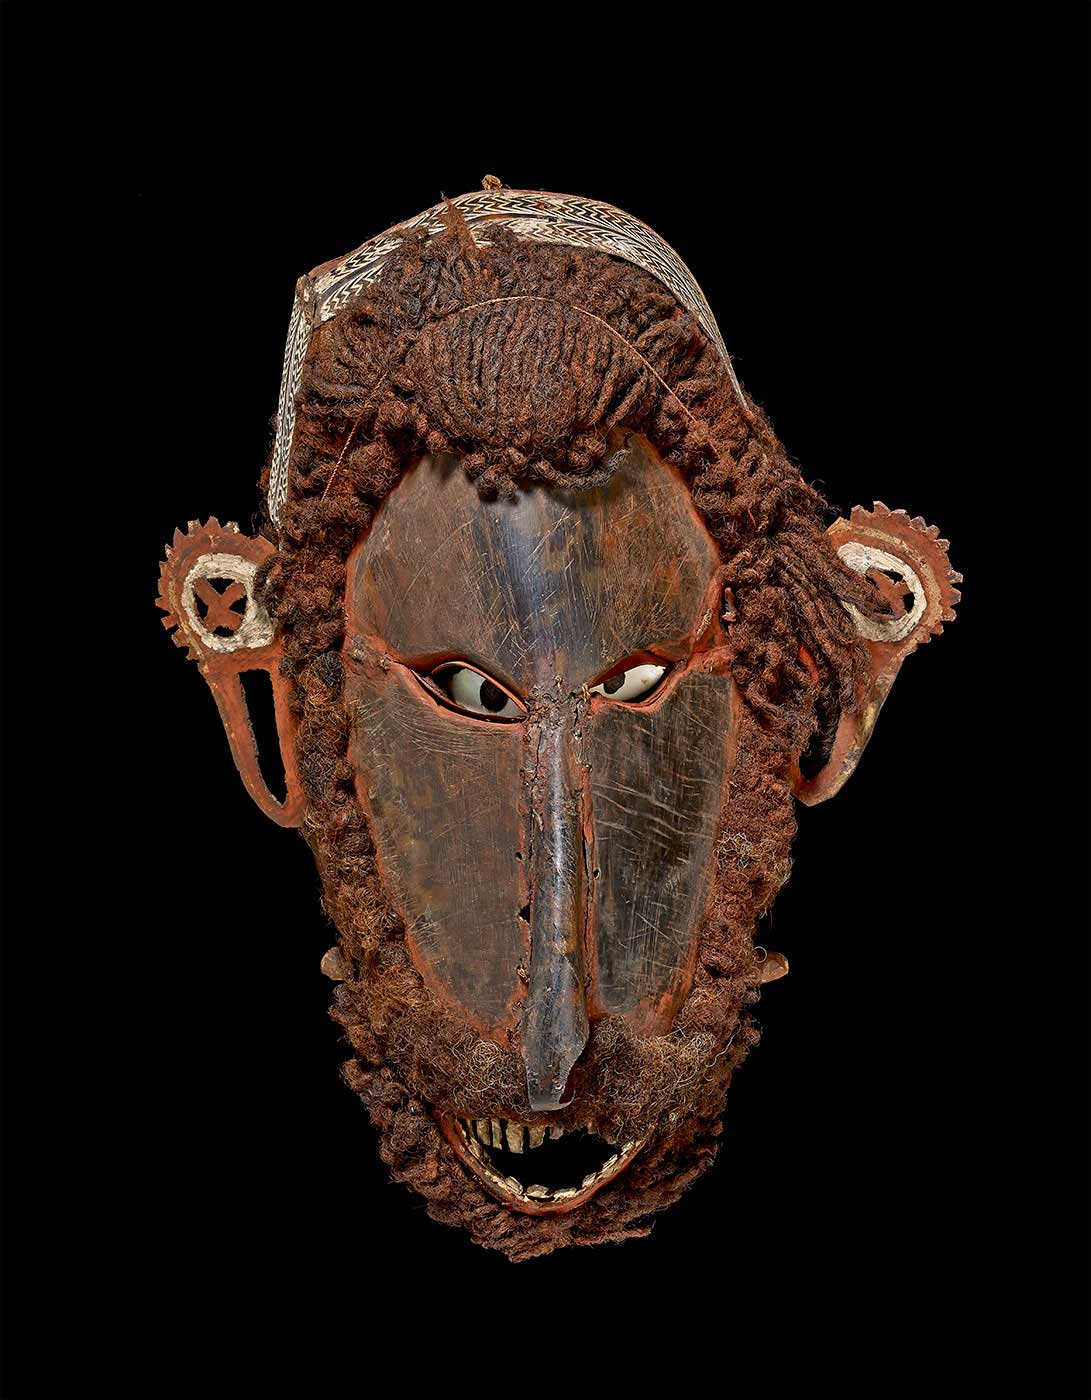 A mask made from turtle-shell plates which have been moulded and sewn into the form of an elaborate human face; hair and beard made from human hair; shell eyes. - click to view larger image